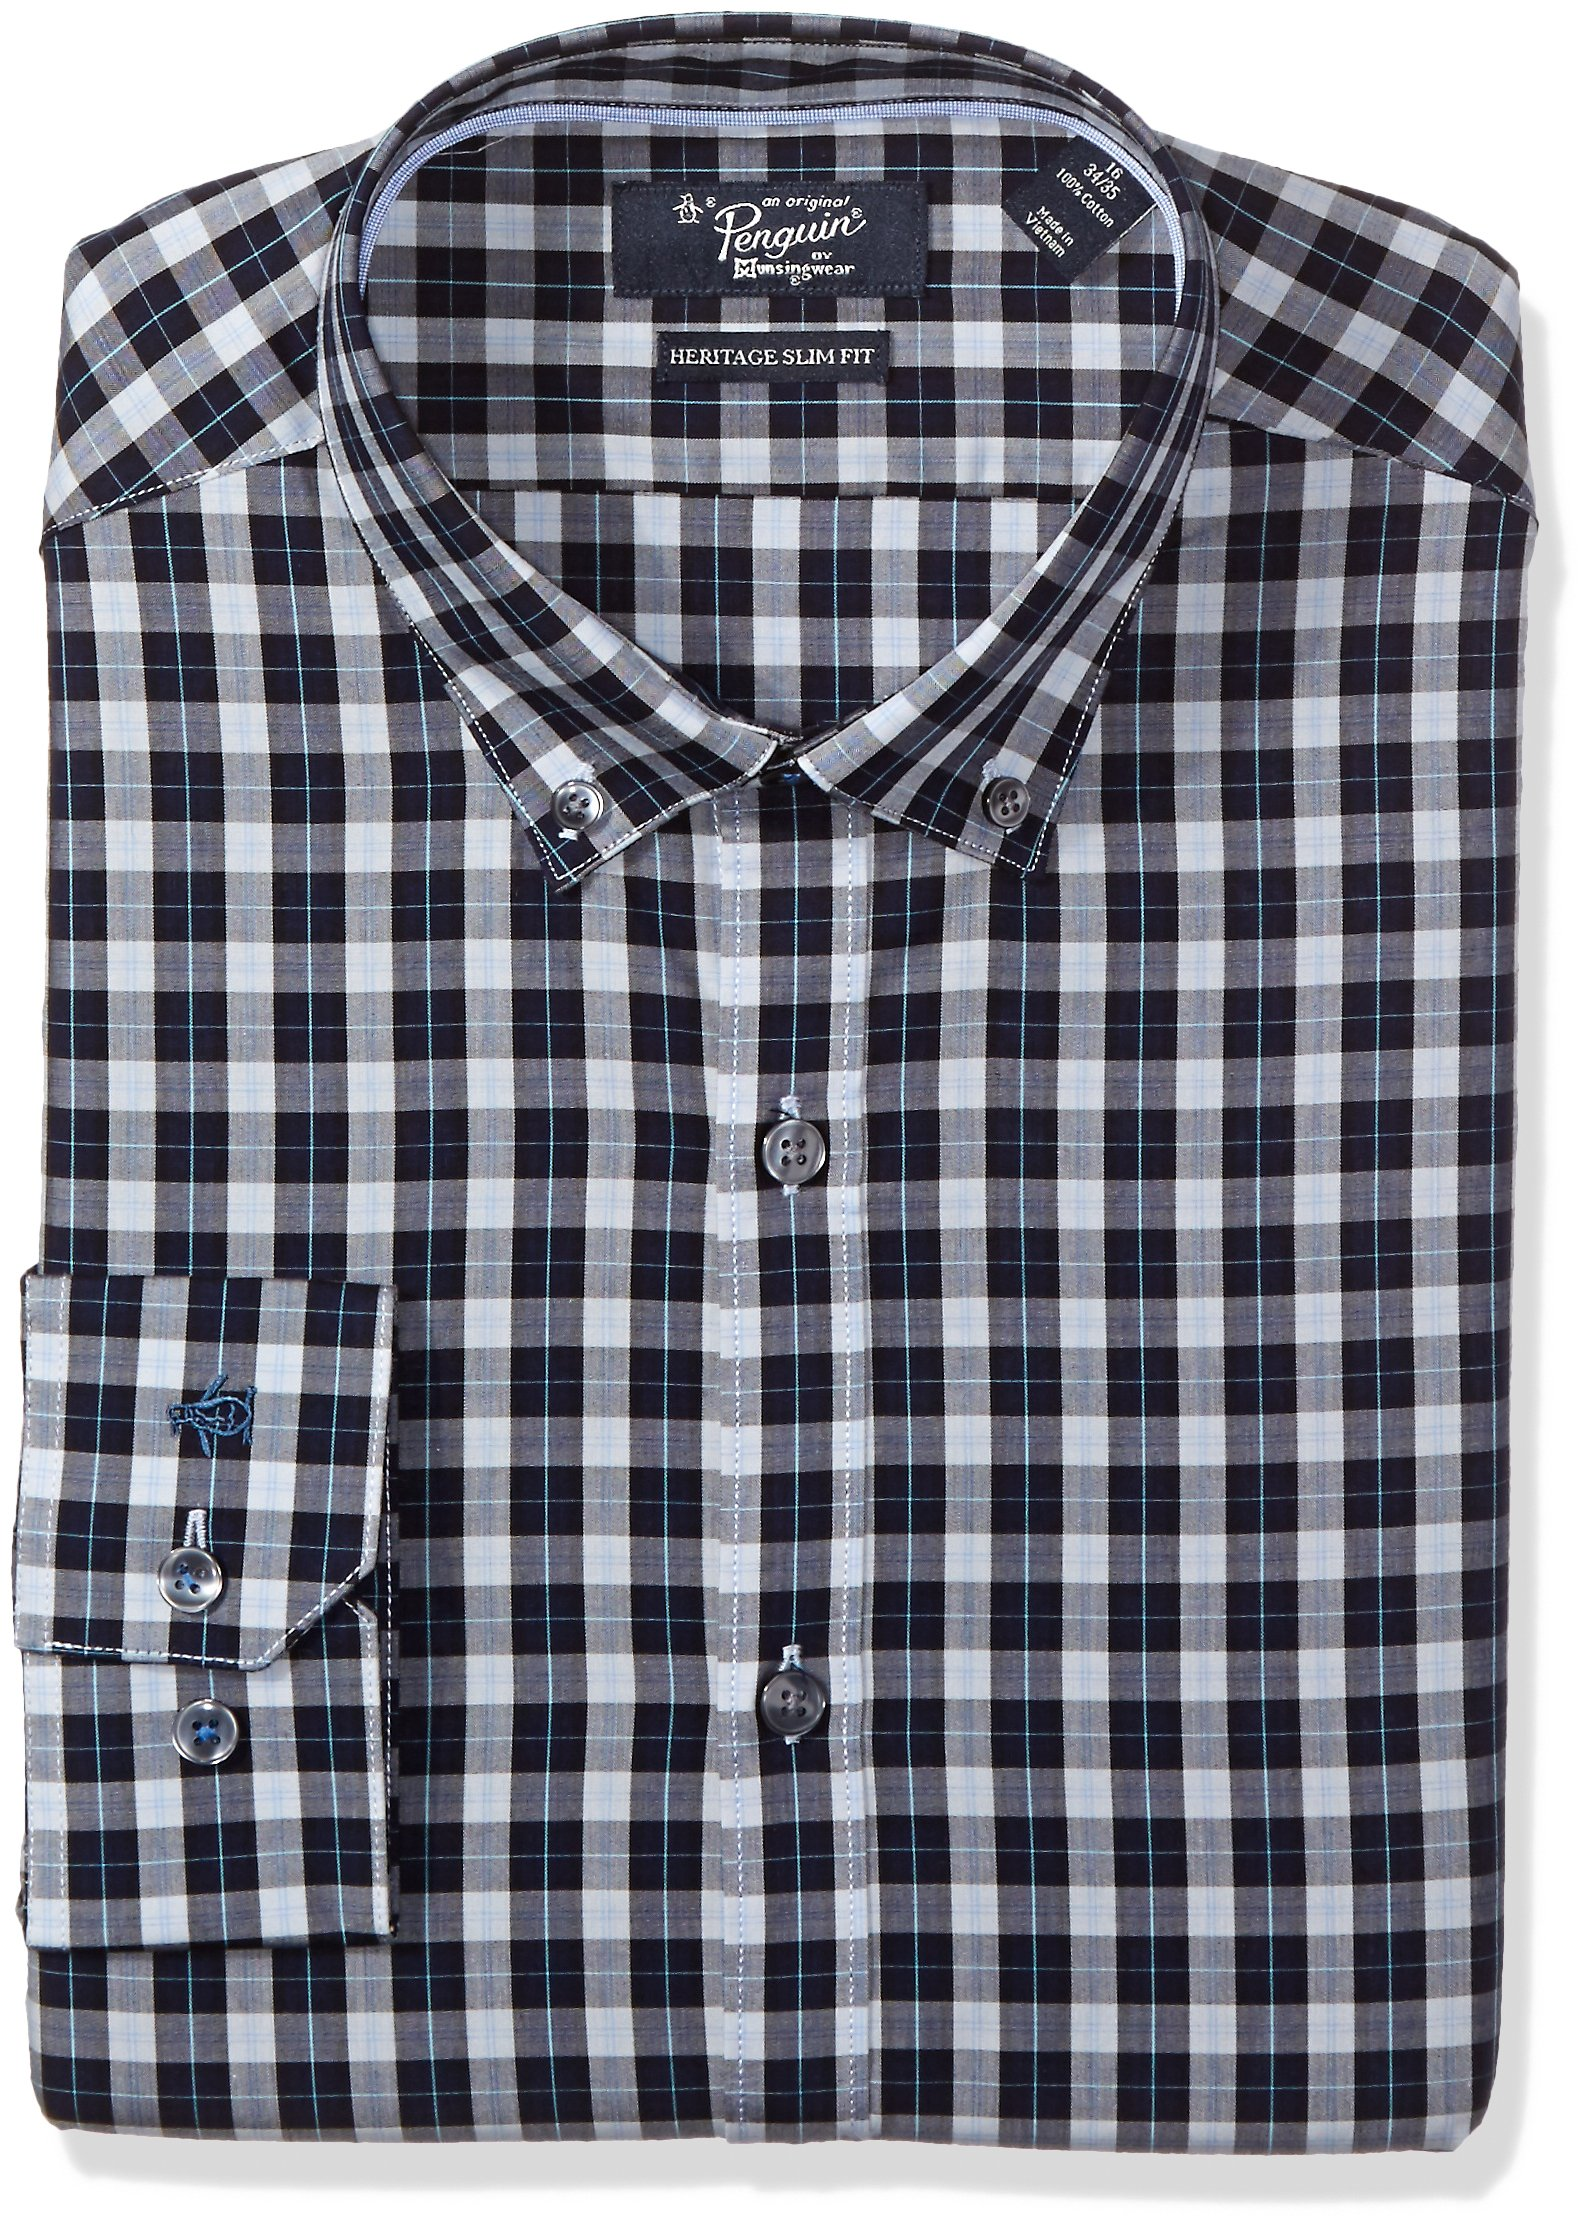 Original Penguin Men's Slim Fit Tonal Plaid Dress Shirt, Navy/Grey, 16.5 34/35 by Original Penguin